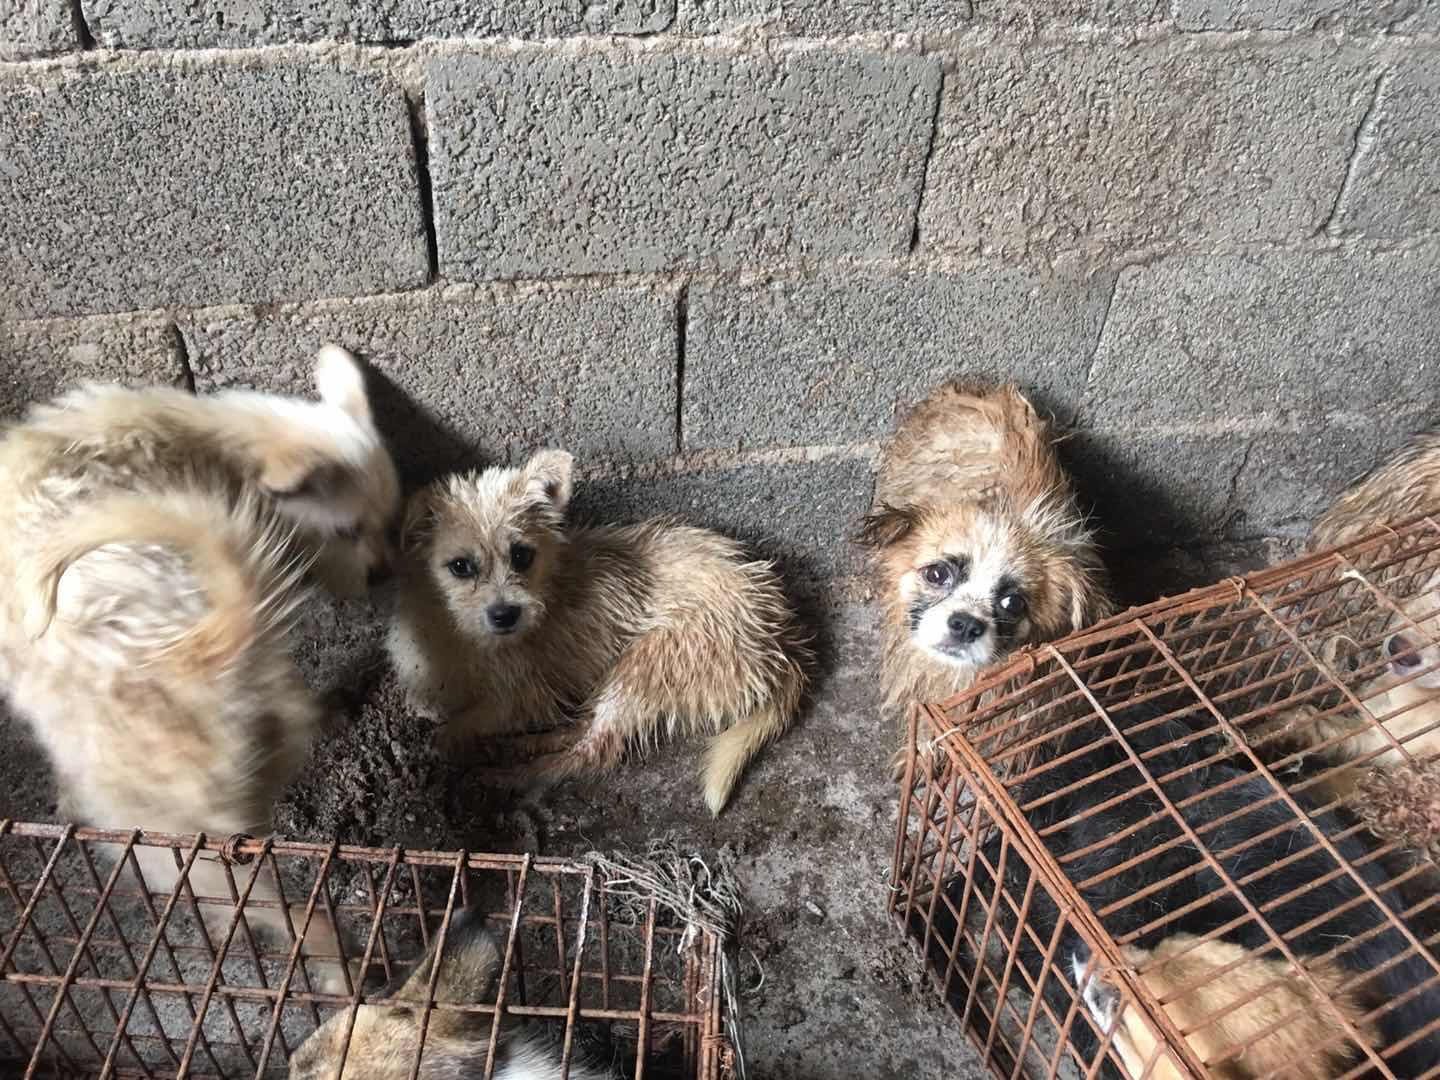 1 5 Million People Sign Petition To Ban China's Yulin Dog Meat